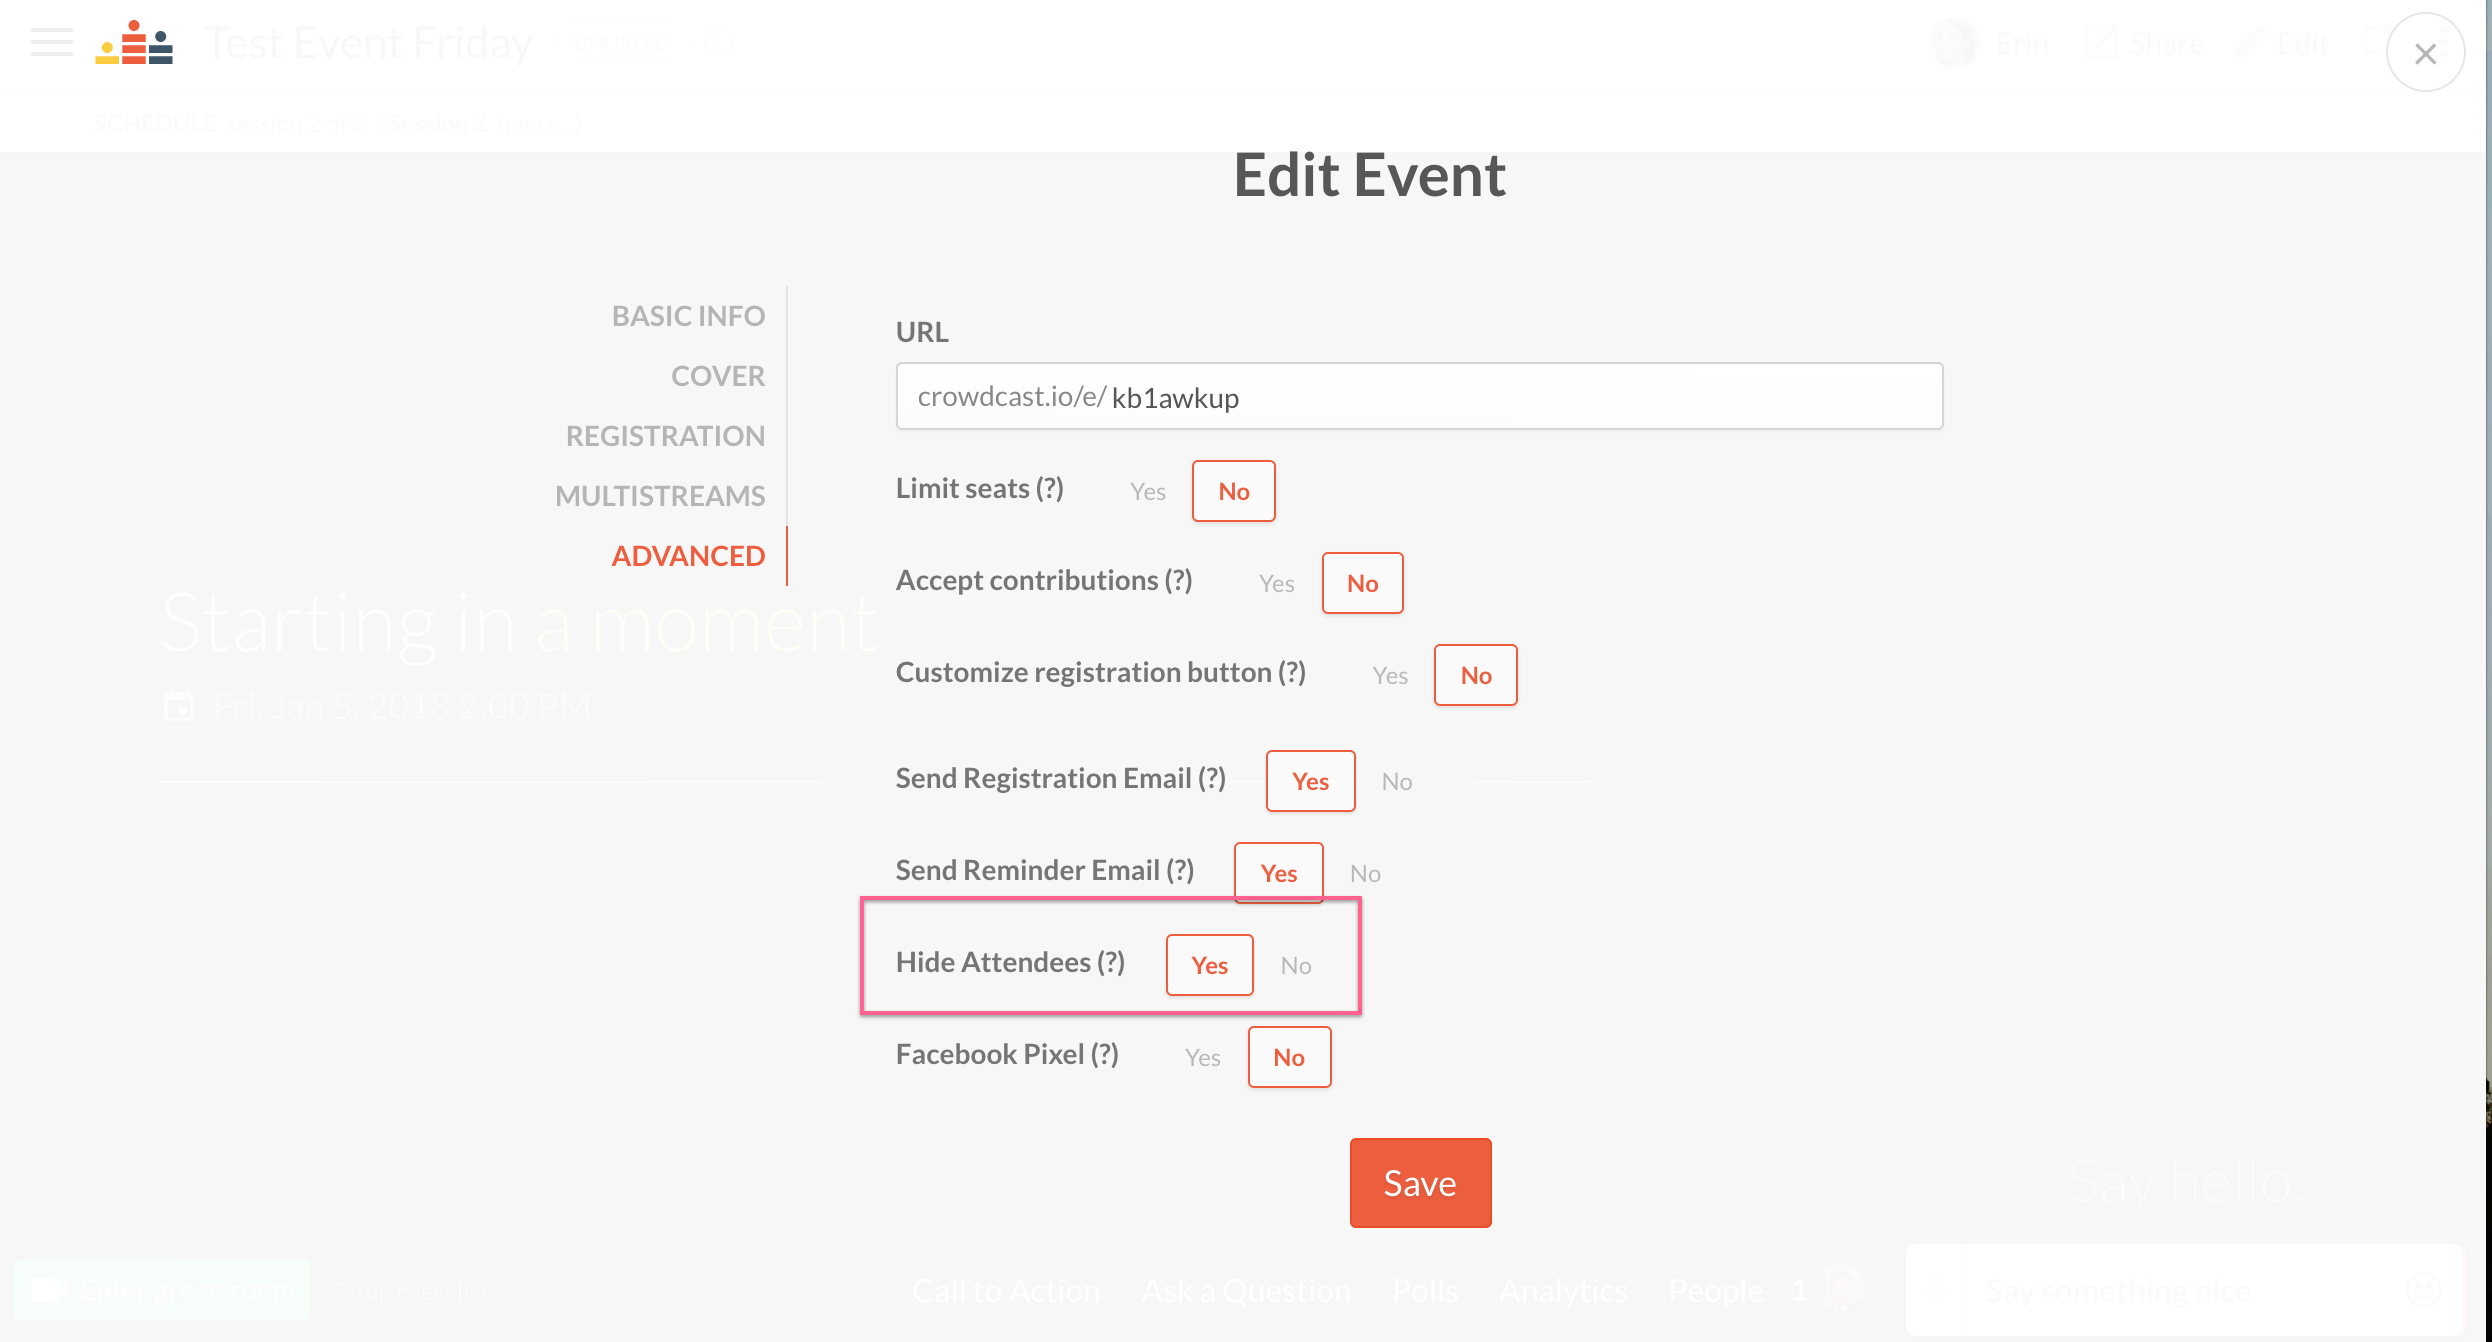 Screenshot of the advanced section within edit event with the hide attendees option circled.